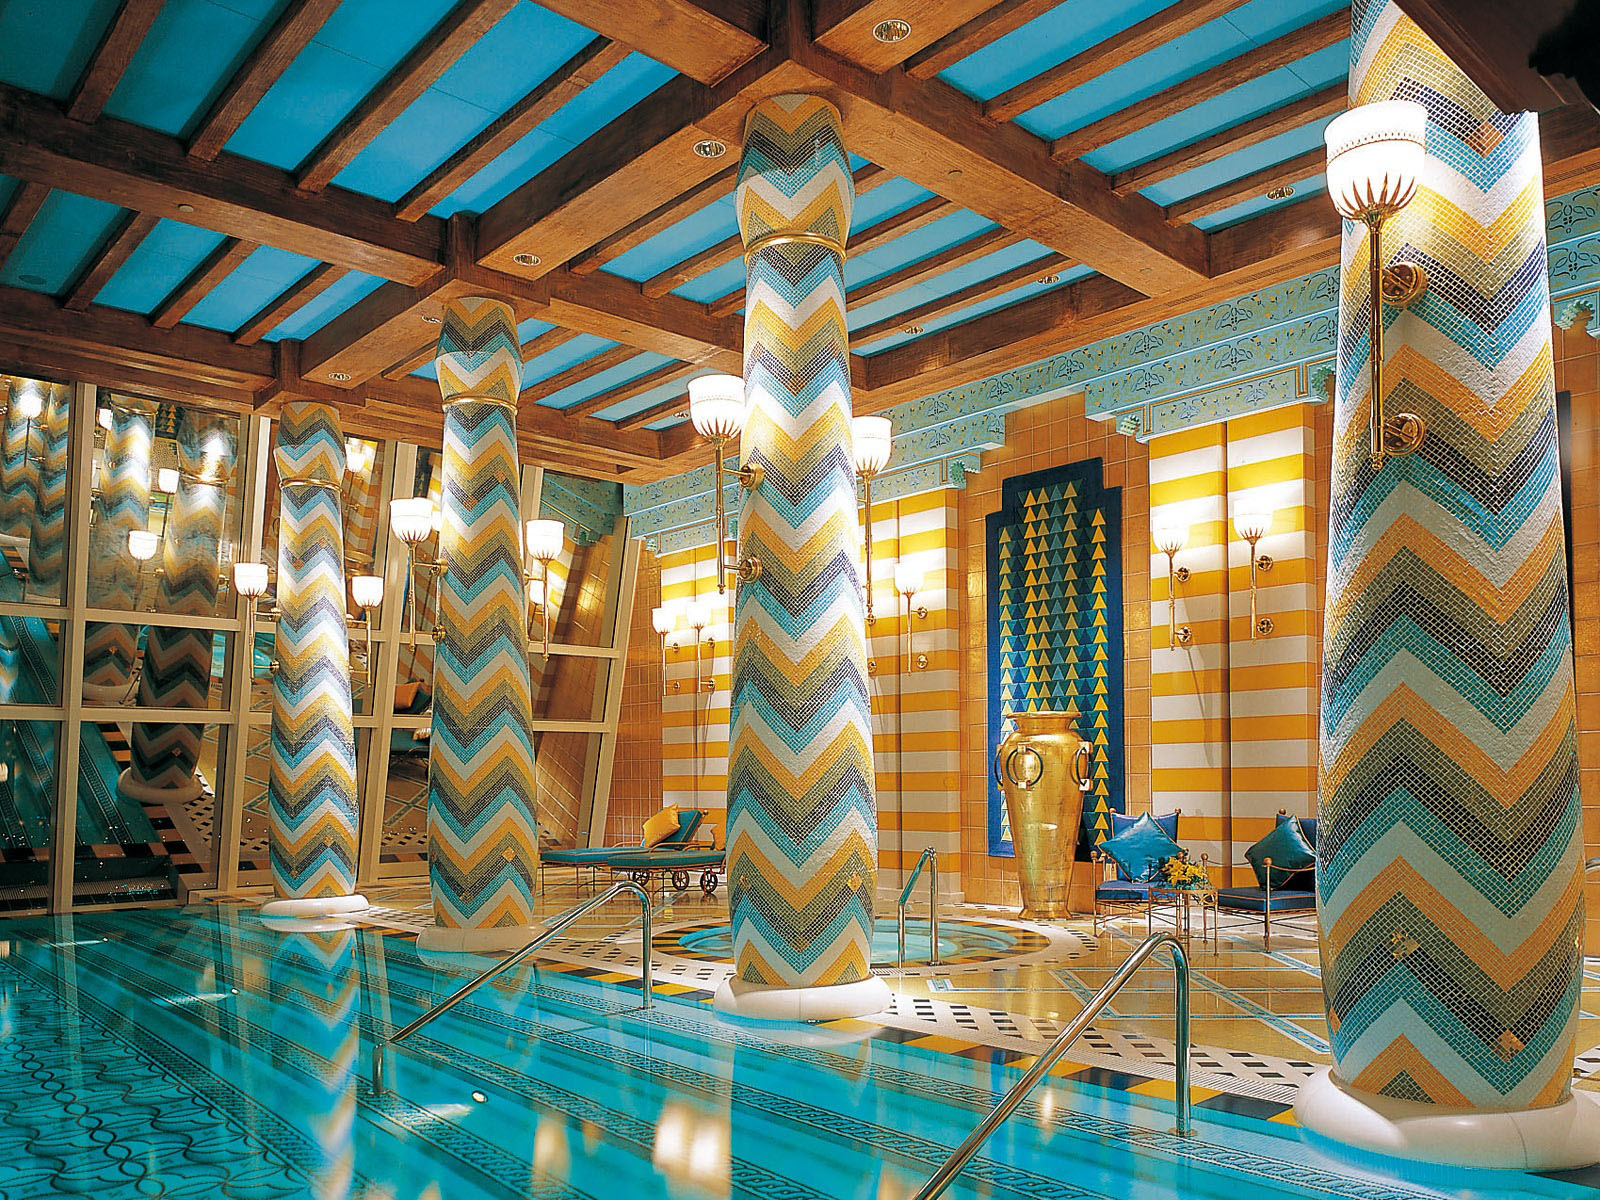 Impressive Swimming Pool Dubai Uae Burj Al Arab